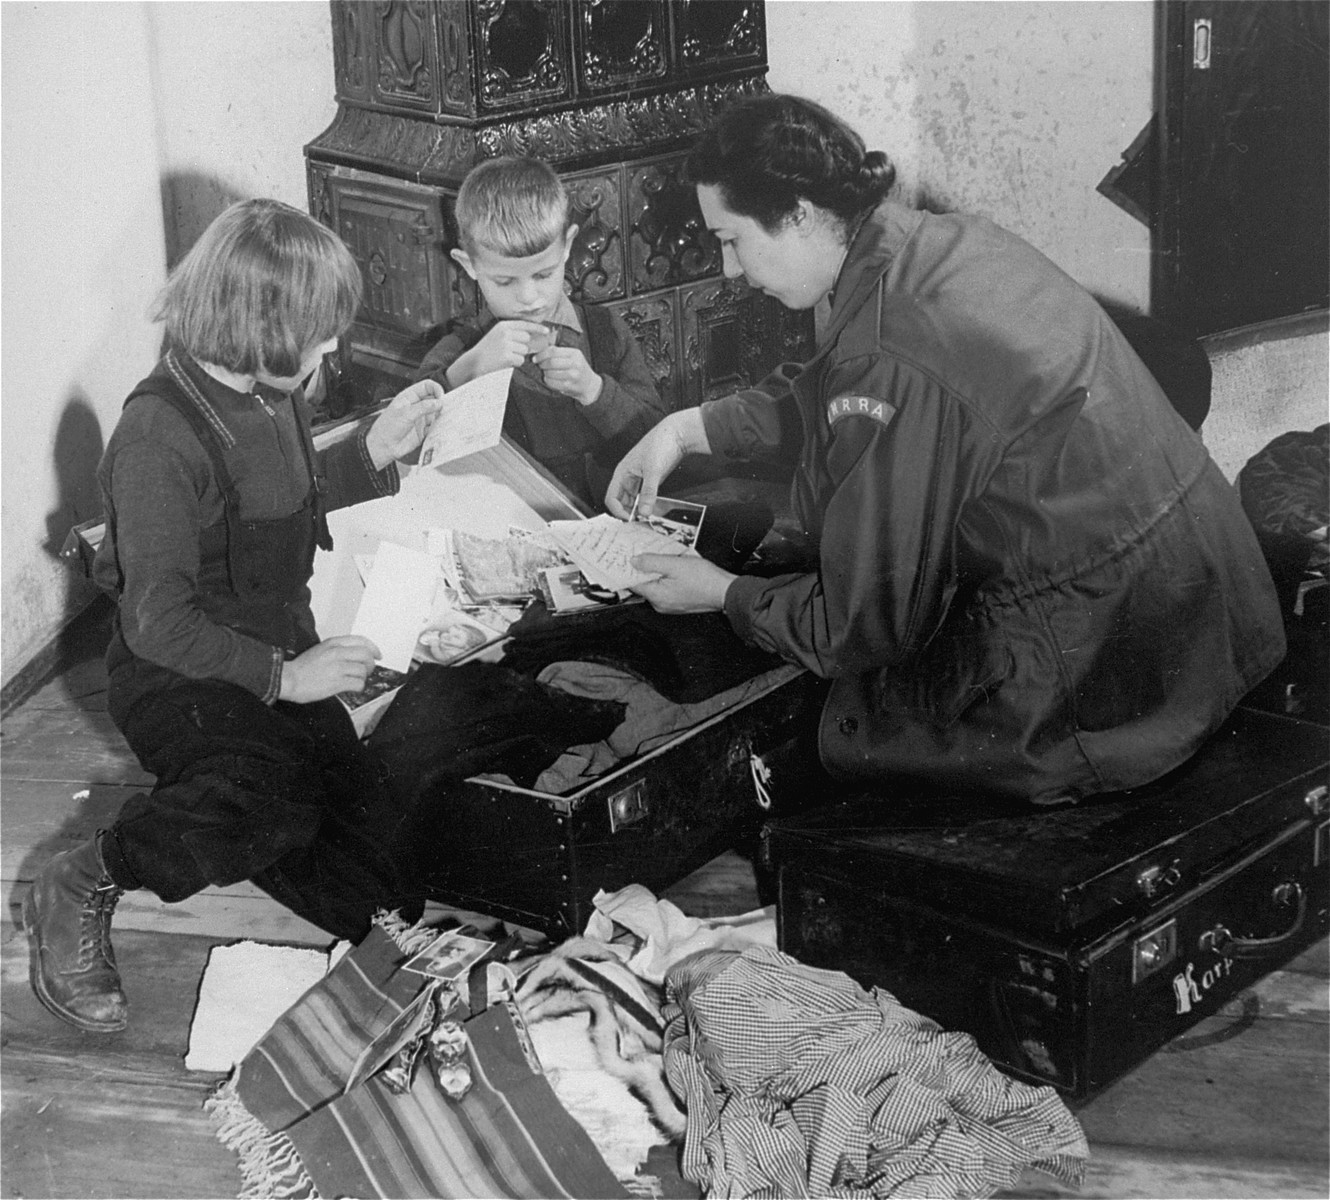 UN relief worker Greta Fischer helps Sophia and Janusz Karpaks pack for a trip to Switzerland, where they will spend several winter months with other  DP children from Prien, under the care of Swiss charitable organizations.